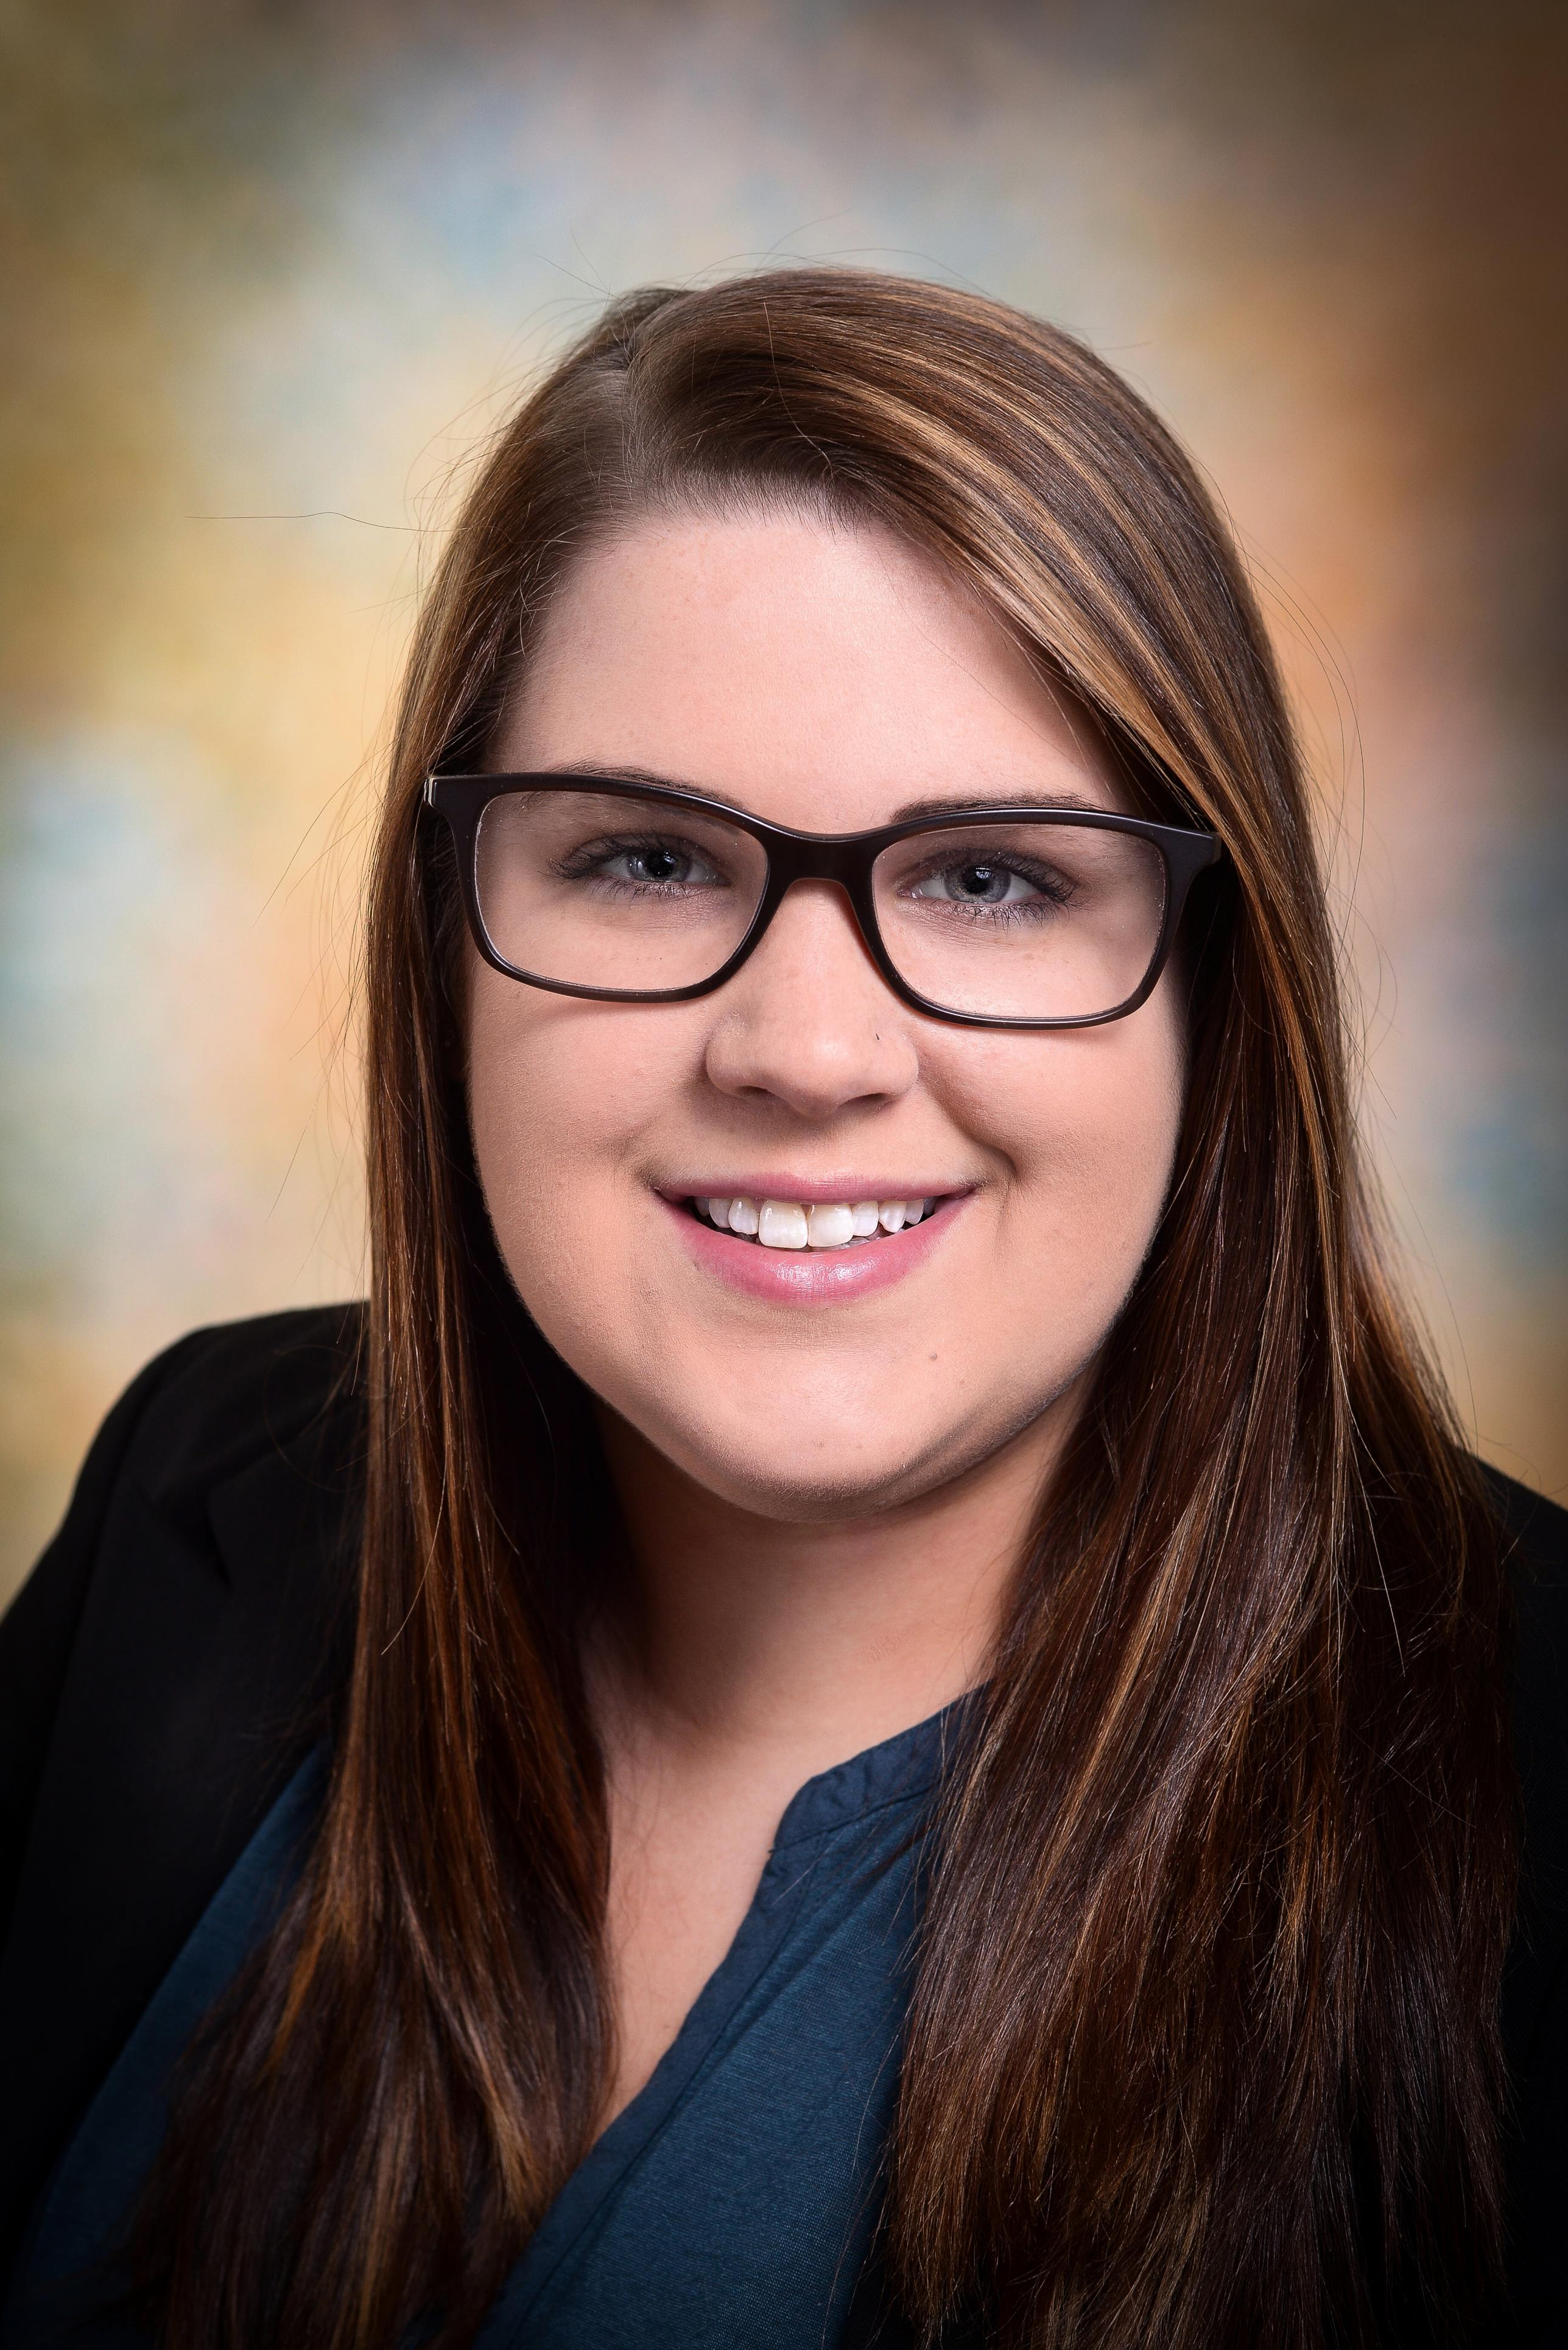 Hannah Altomare Promoted to Account Executive at RT Specialty